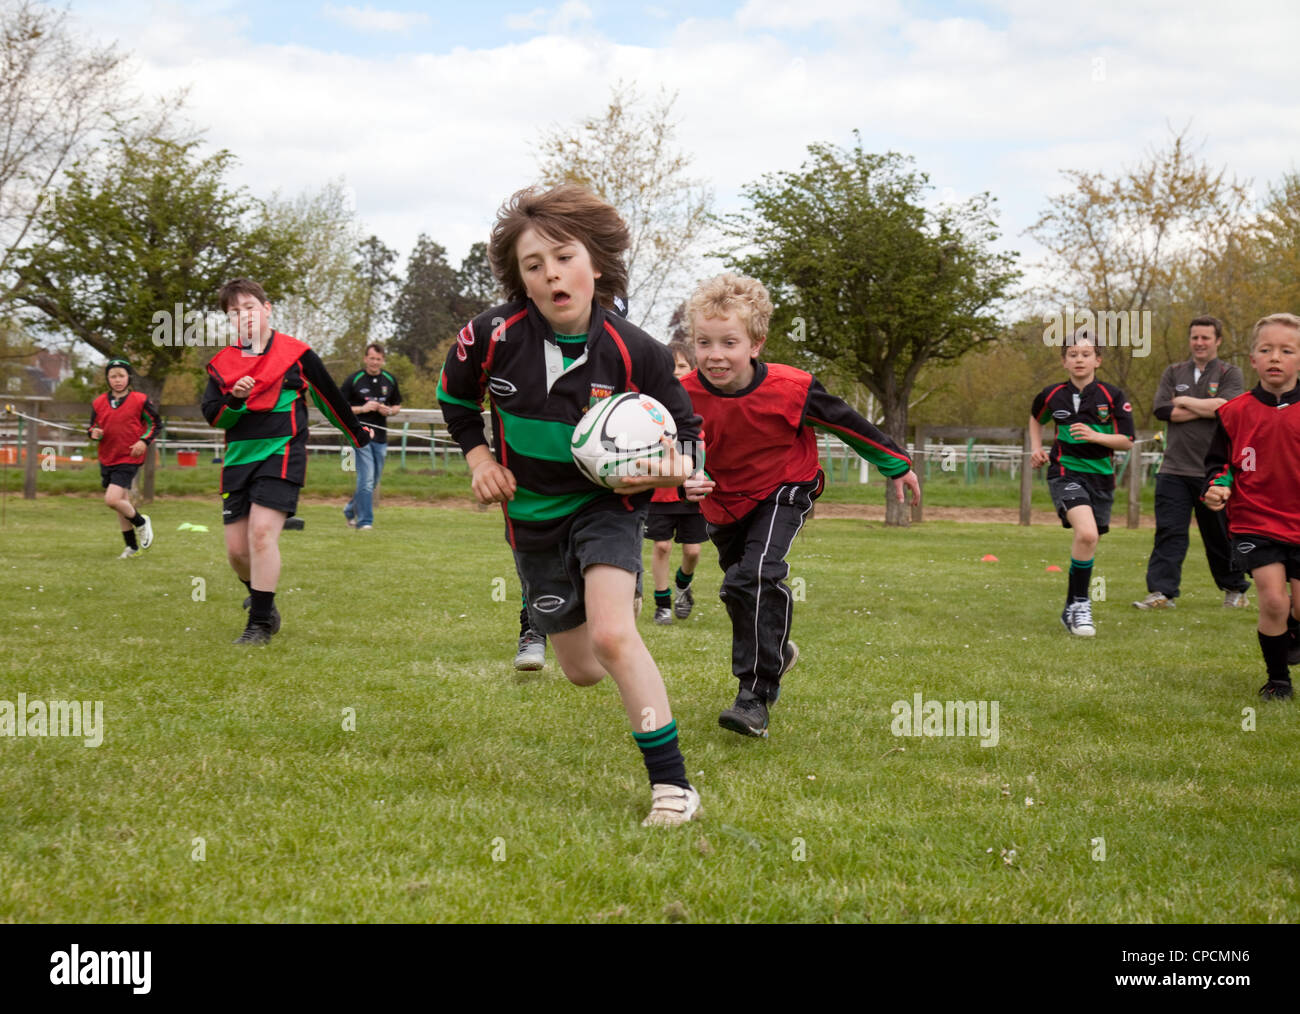 junior-boys-rugby-match-newmarket-suffolk-uk-CPCMN6.jpg